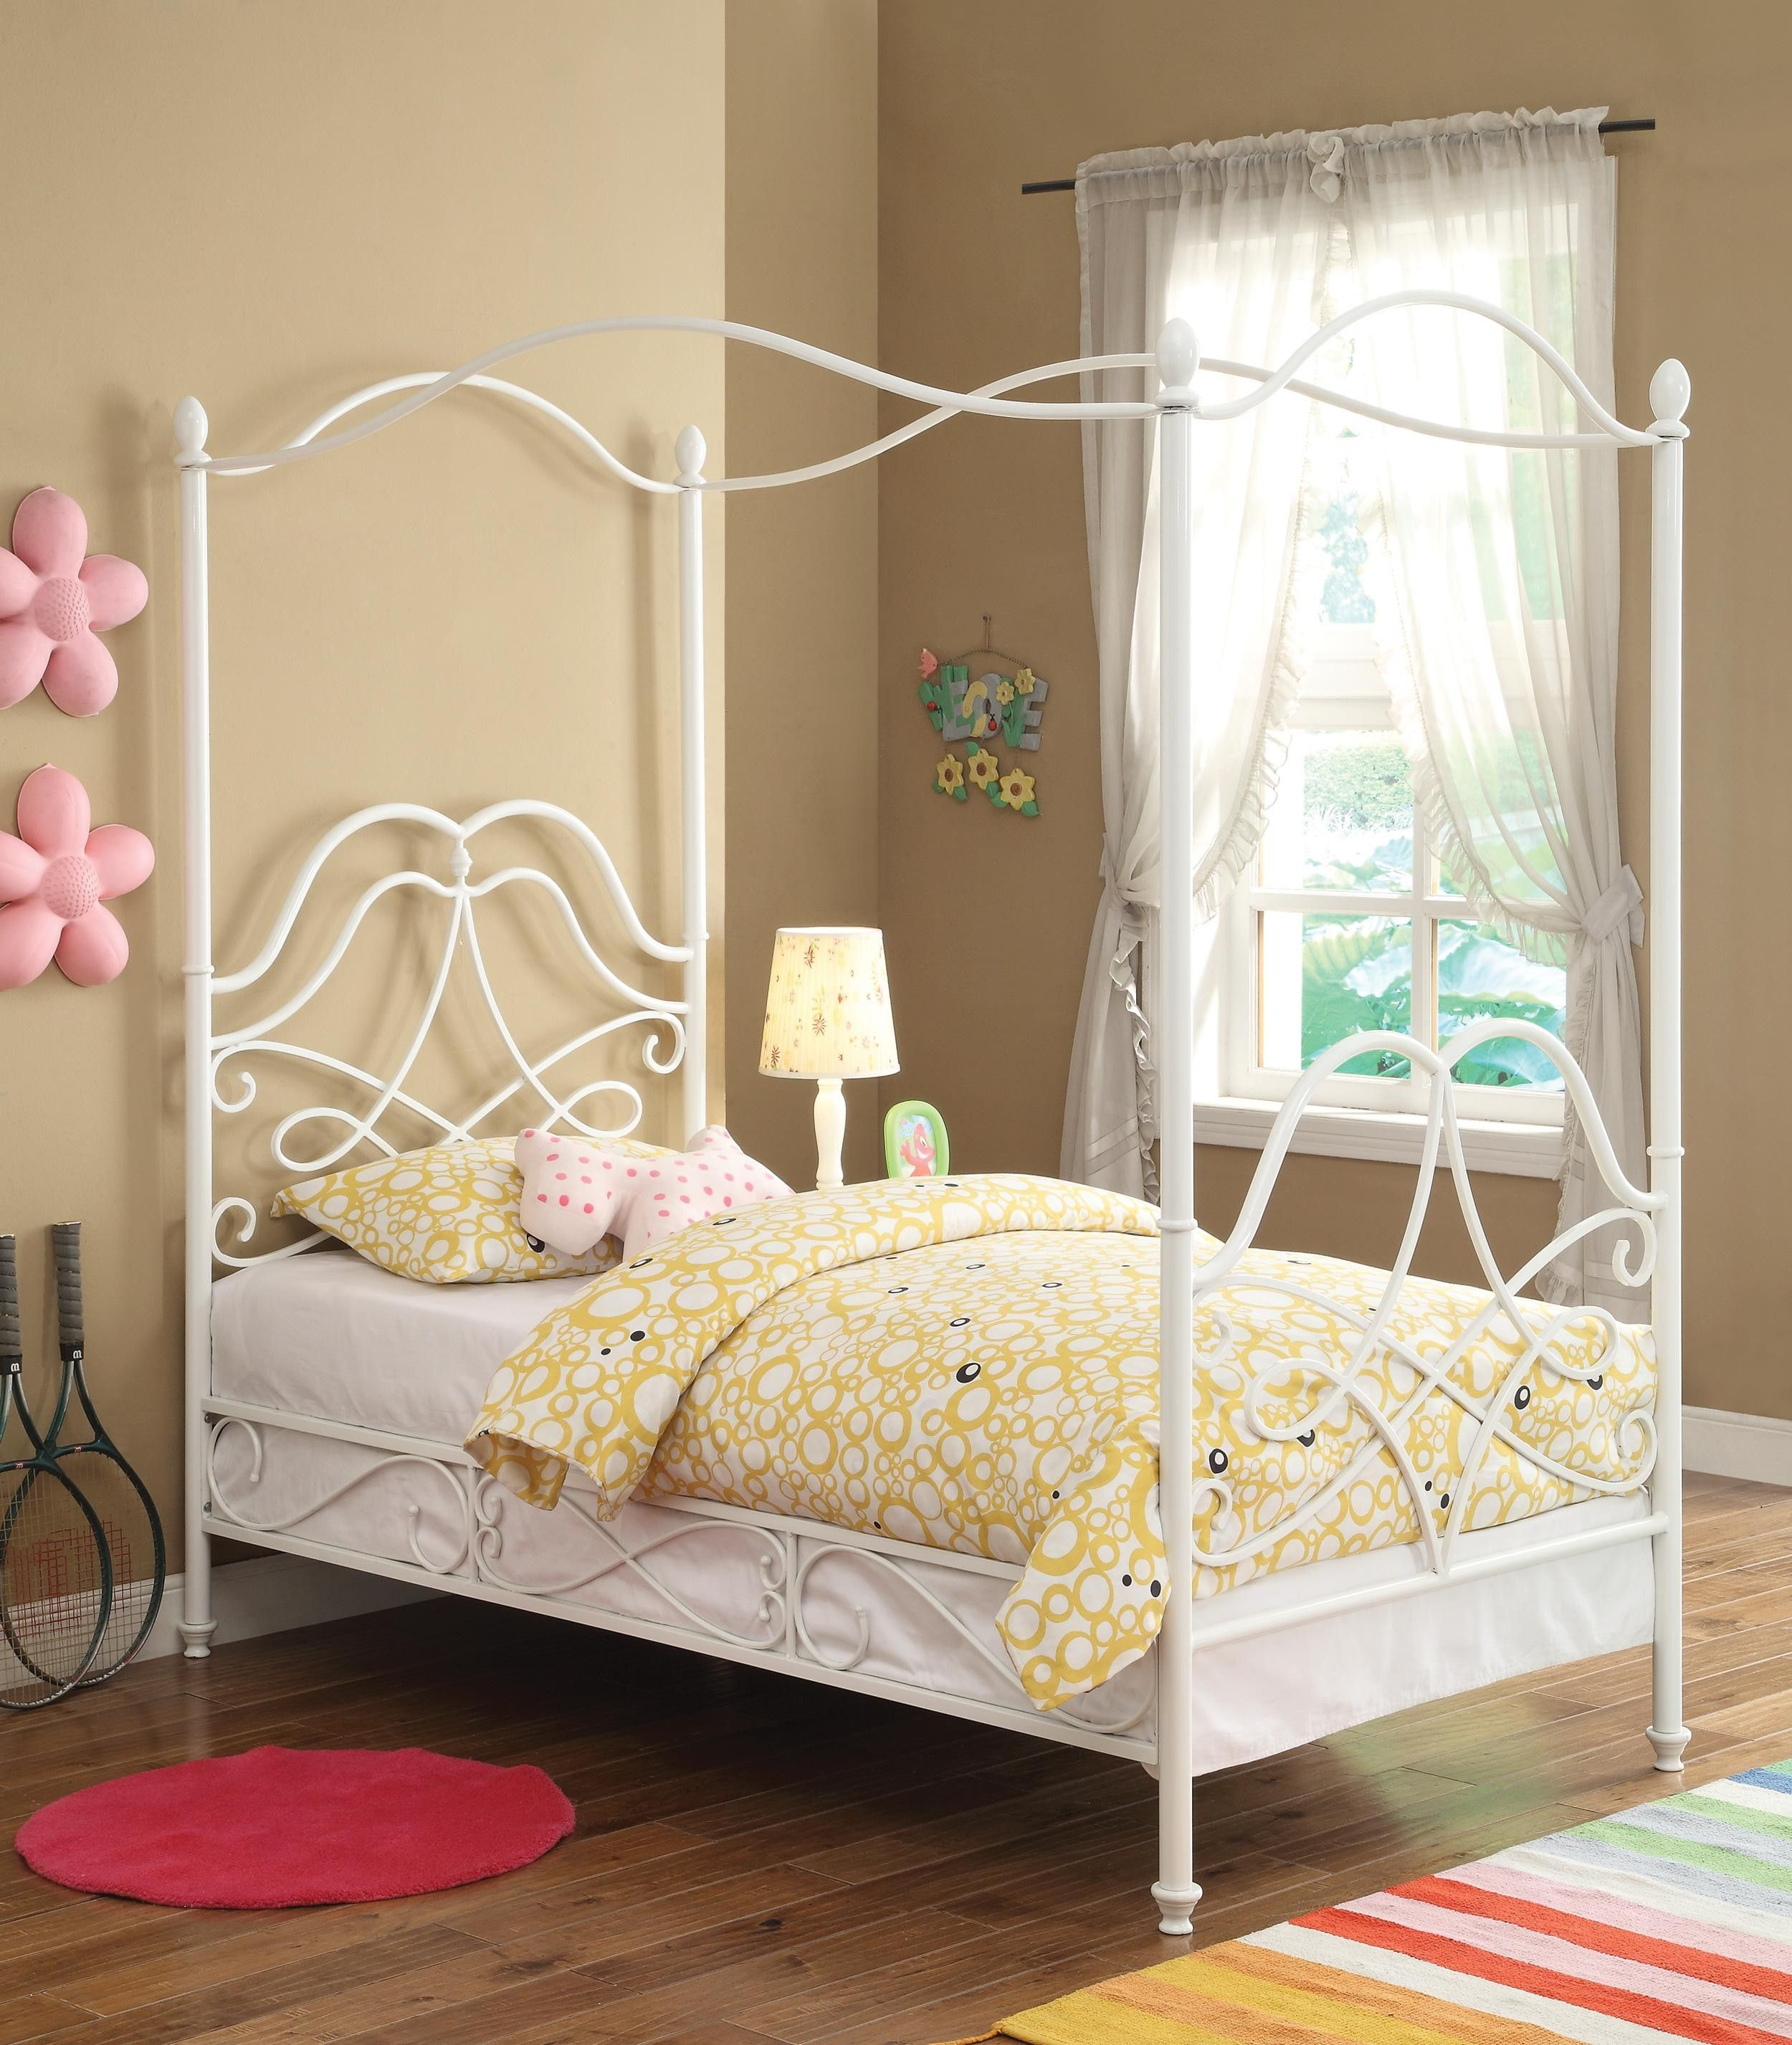 White Metal Twin Size Youth Canopy Bed by Coaster Twin